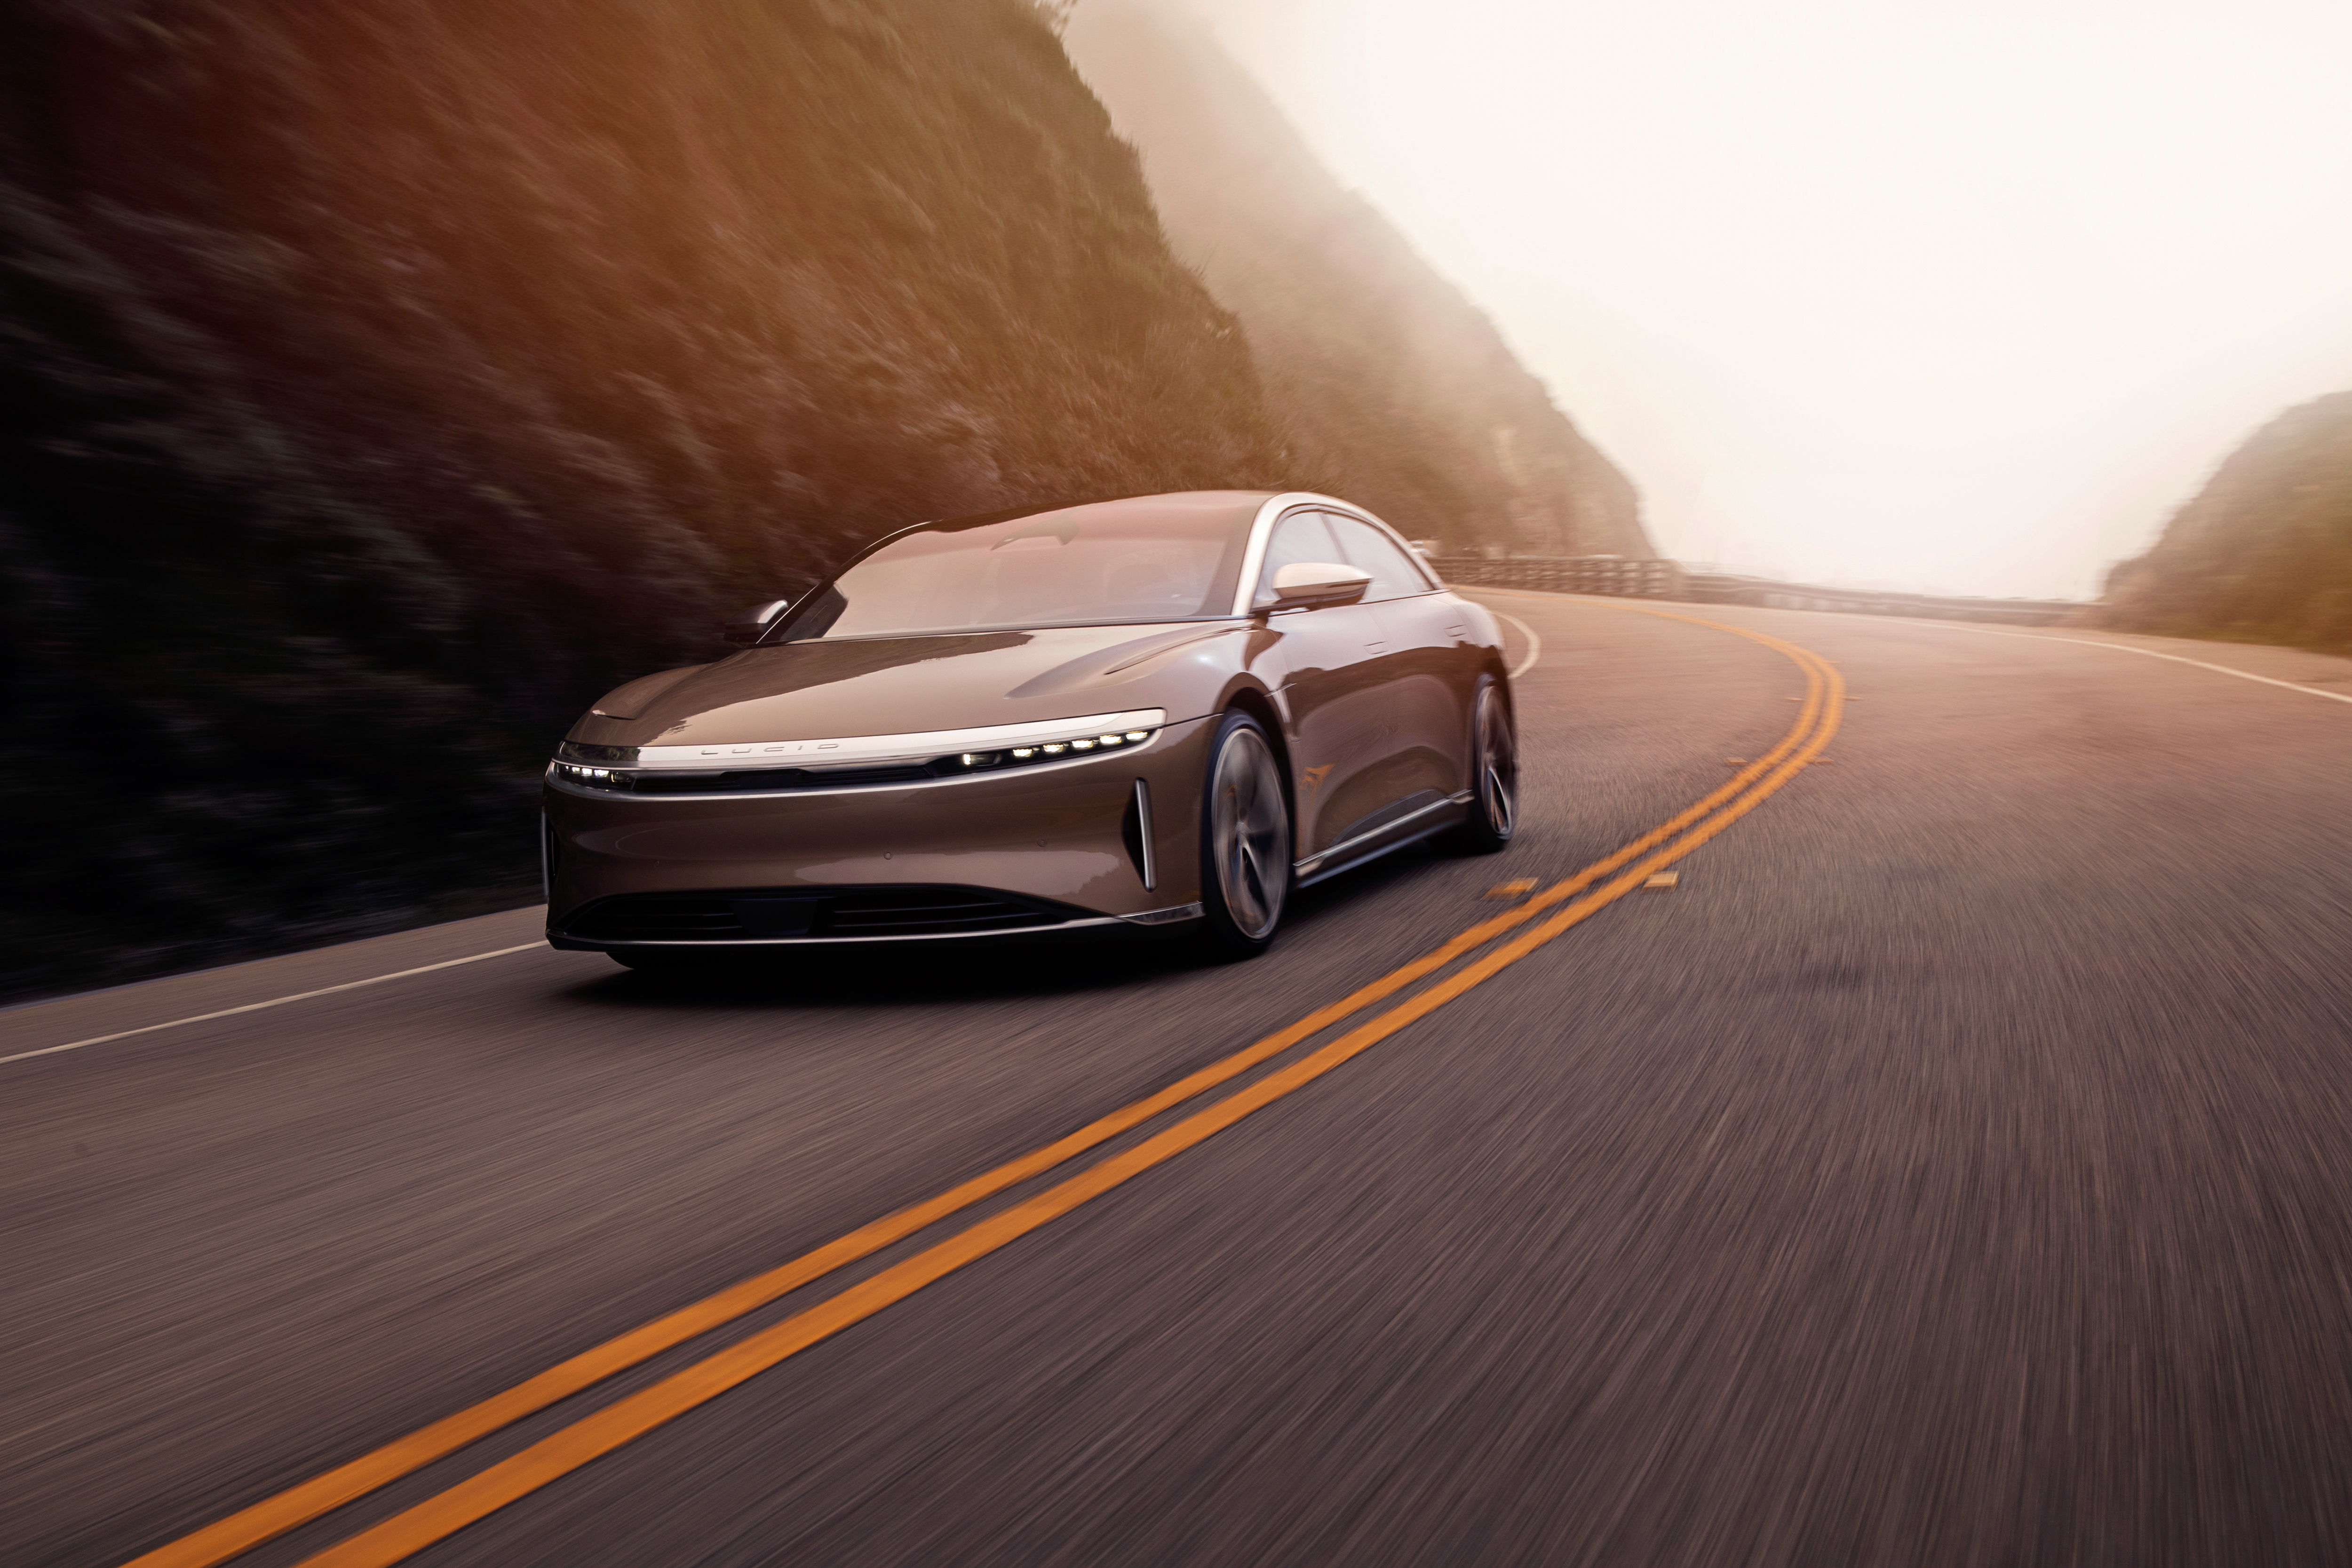 techcrunch.com - Aria Alamalhodaei - Lucid Motors' SPAC merger approved after executives issue plea to shareholders to vote